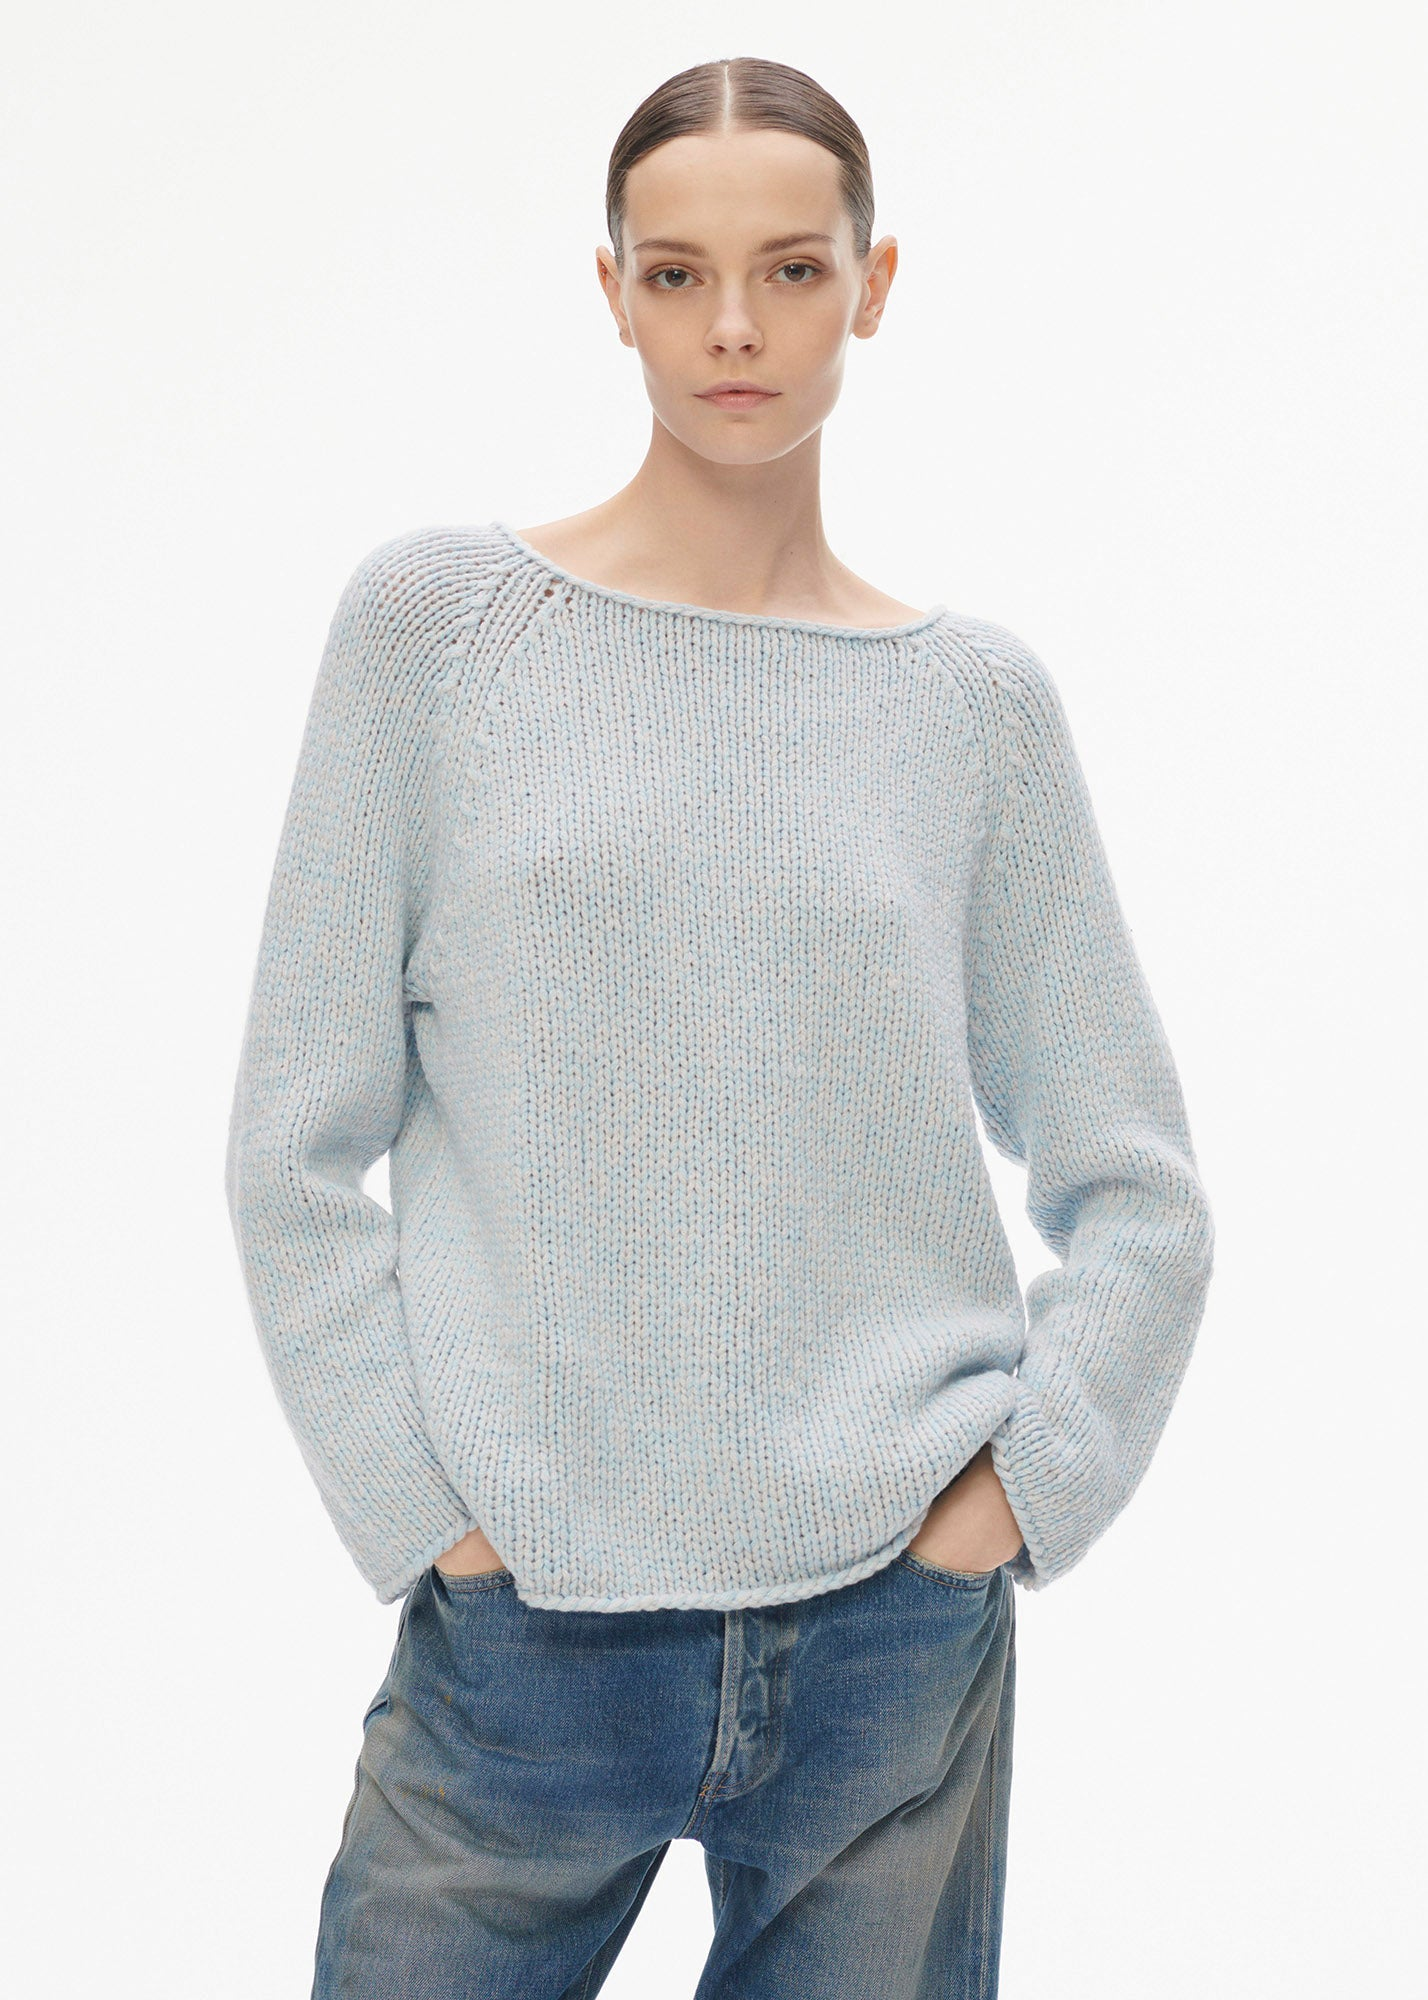 Mulan Sweater Light Blue/ Silver